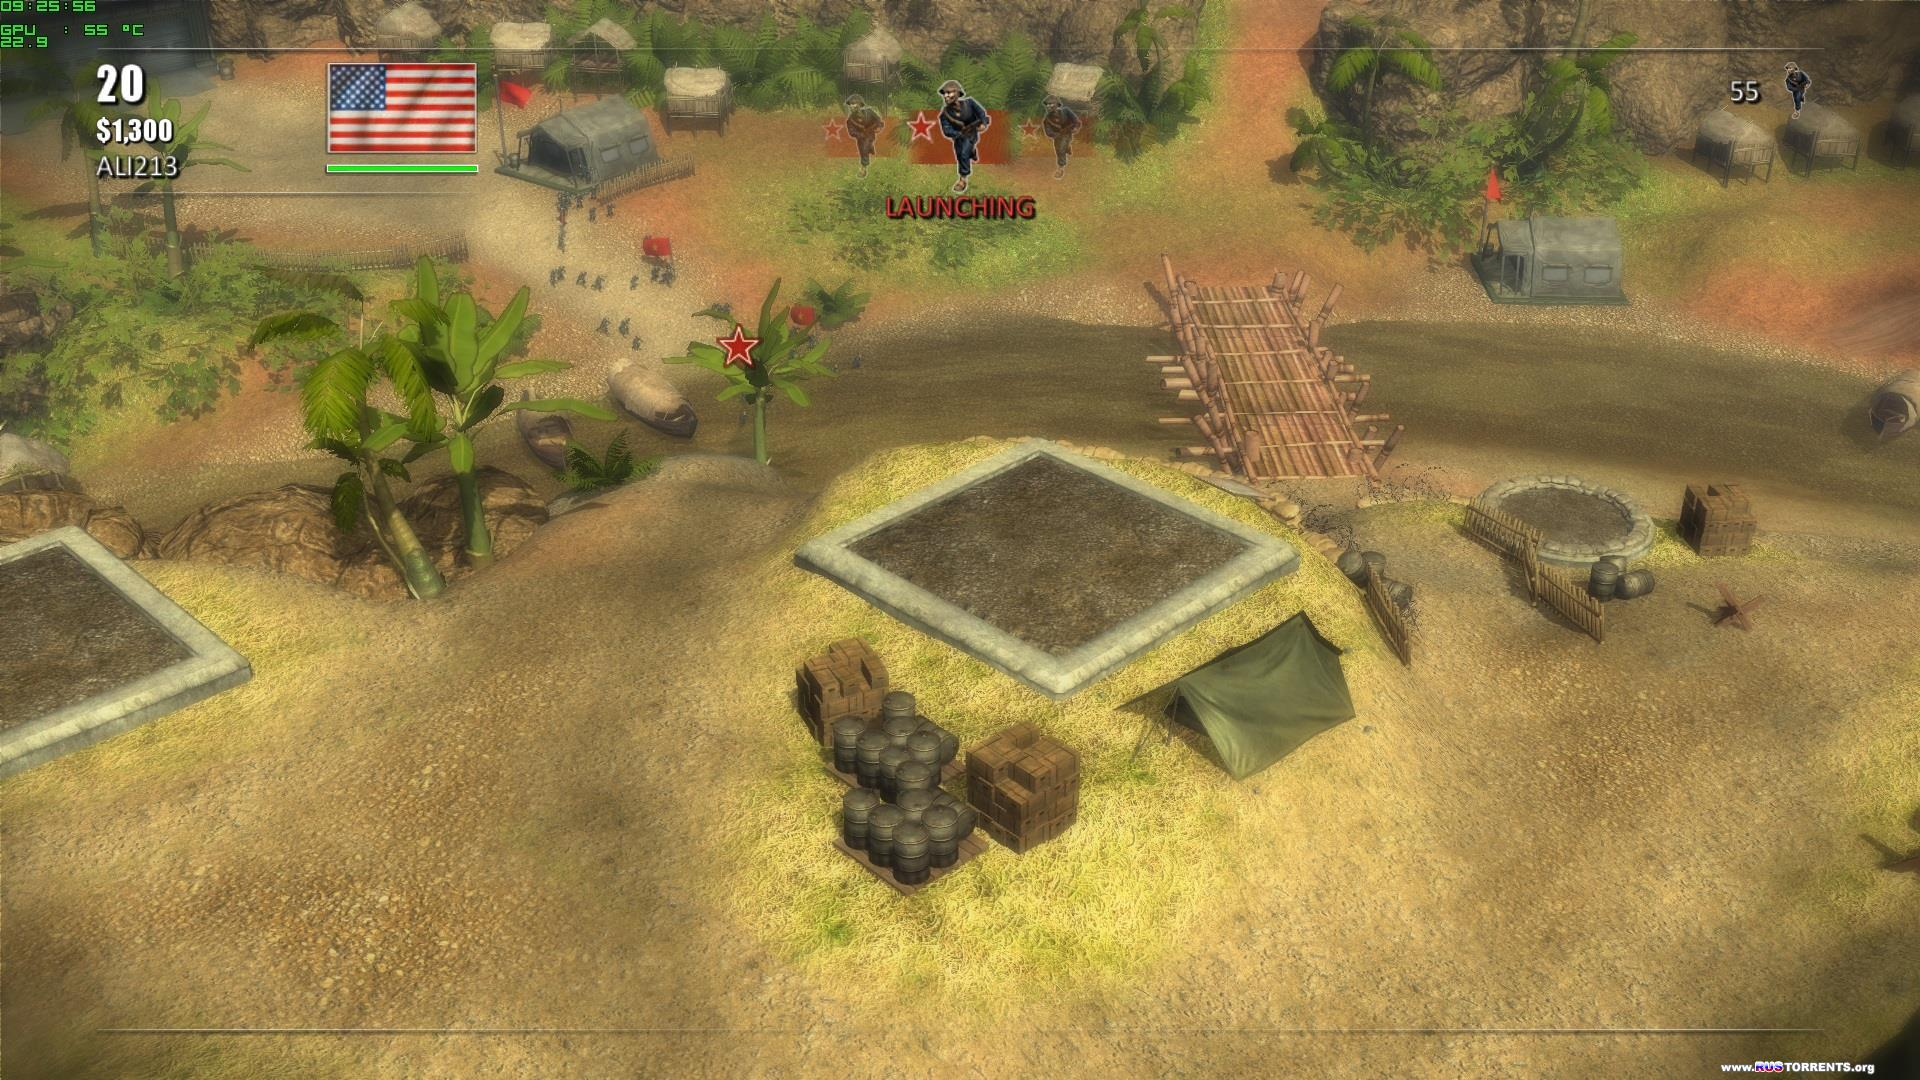 Toy Soldiers: Complete: http://onyxgame.com/ru/games/125-toy-soldiers-complete